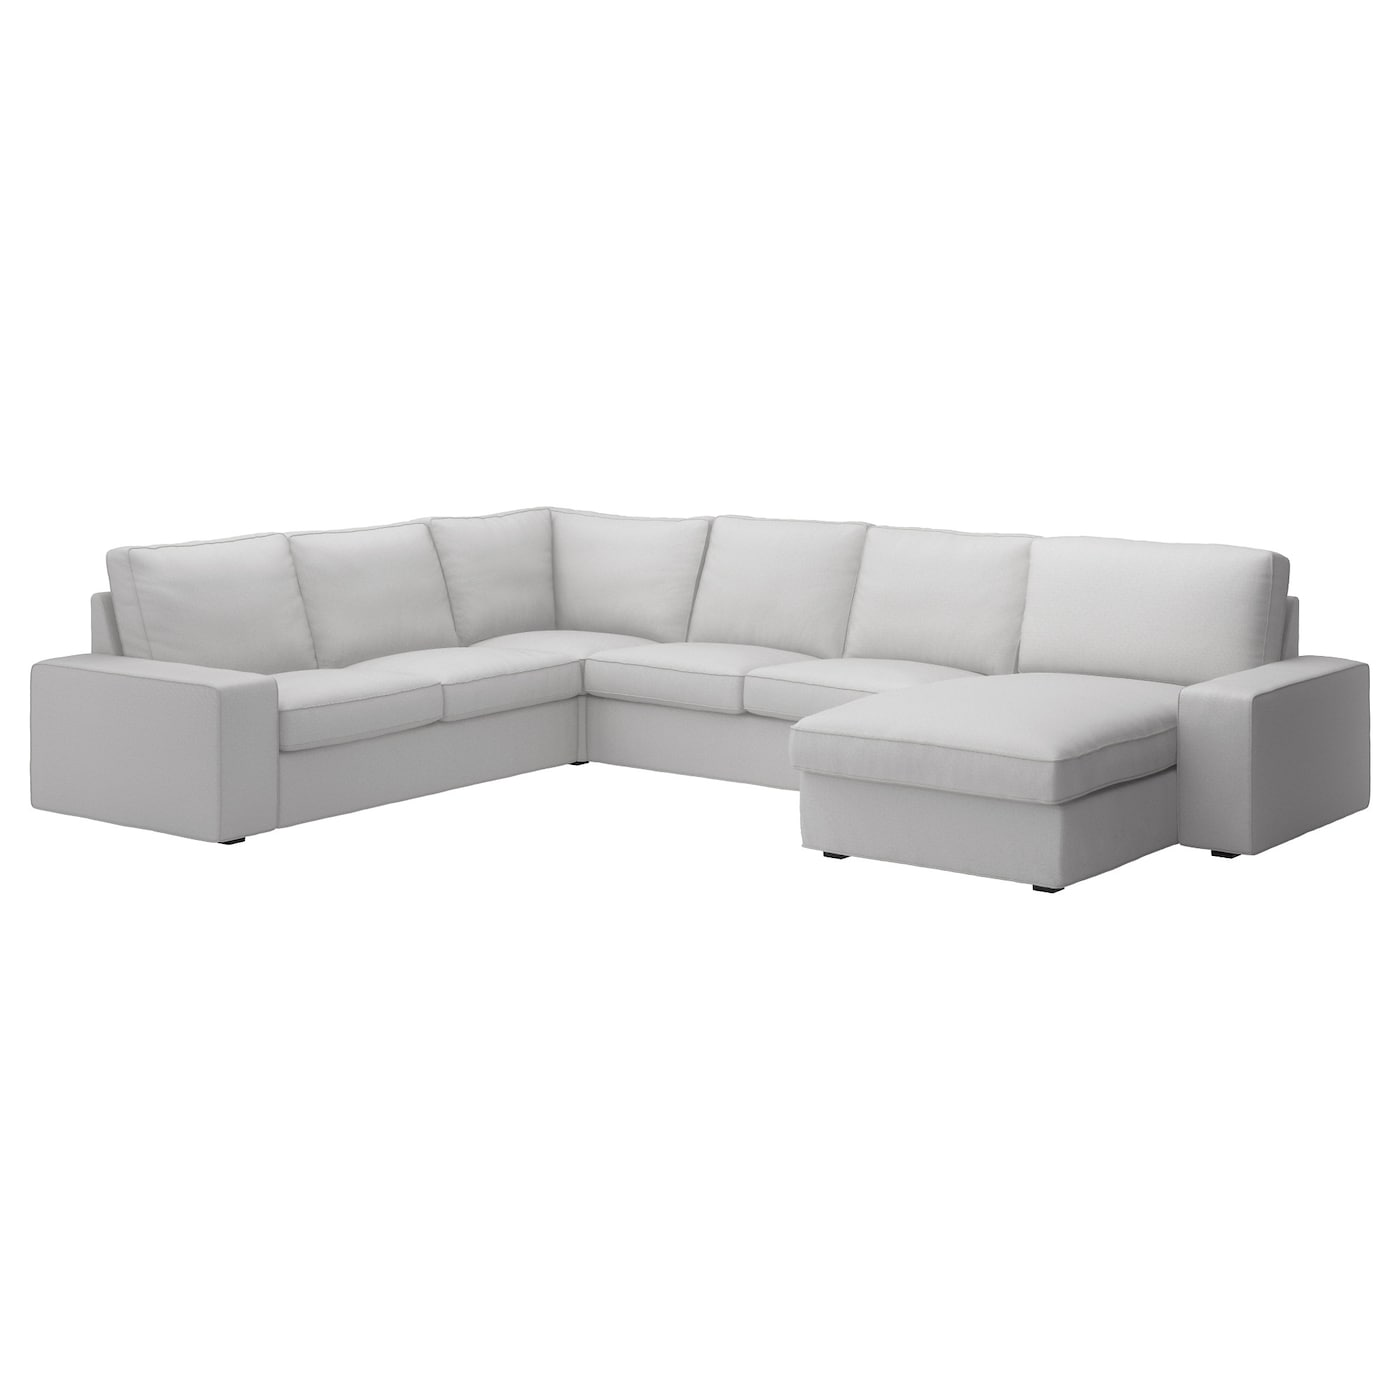 Kivik corner sofa 2 2 with chaise longue ramna light grey for Couch with 2 chaises